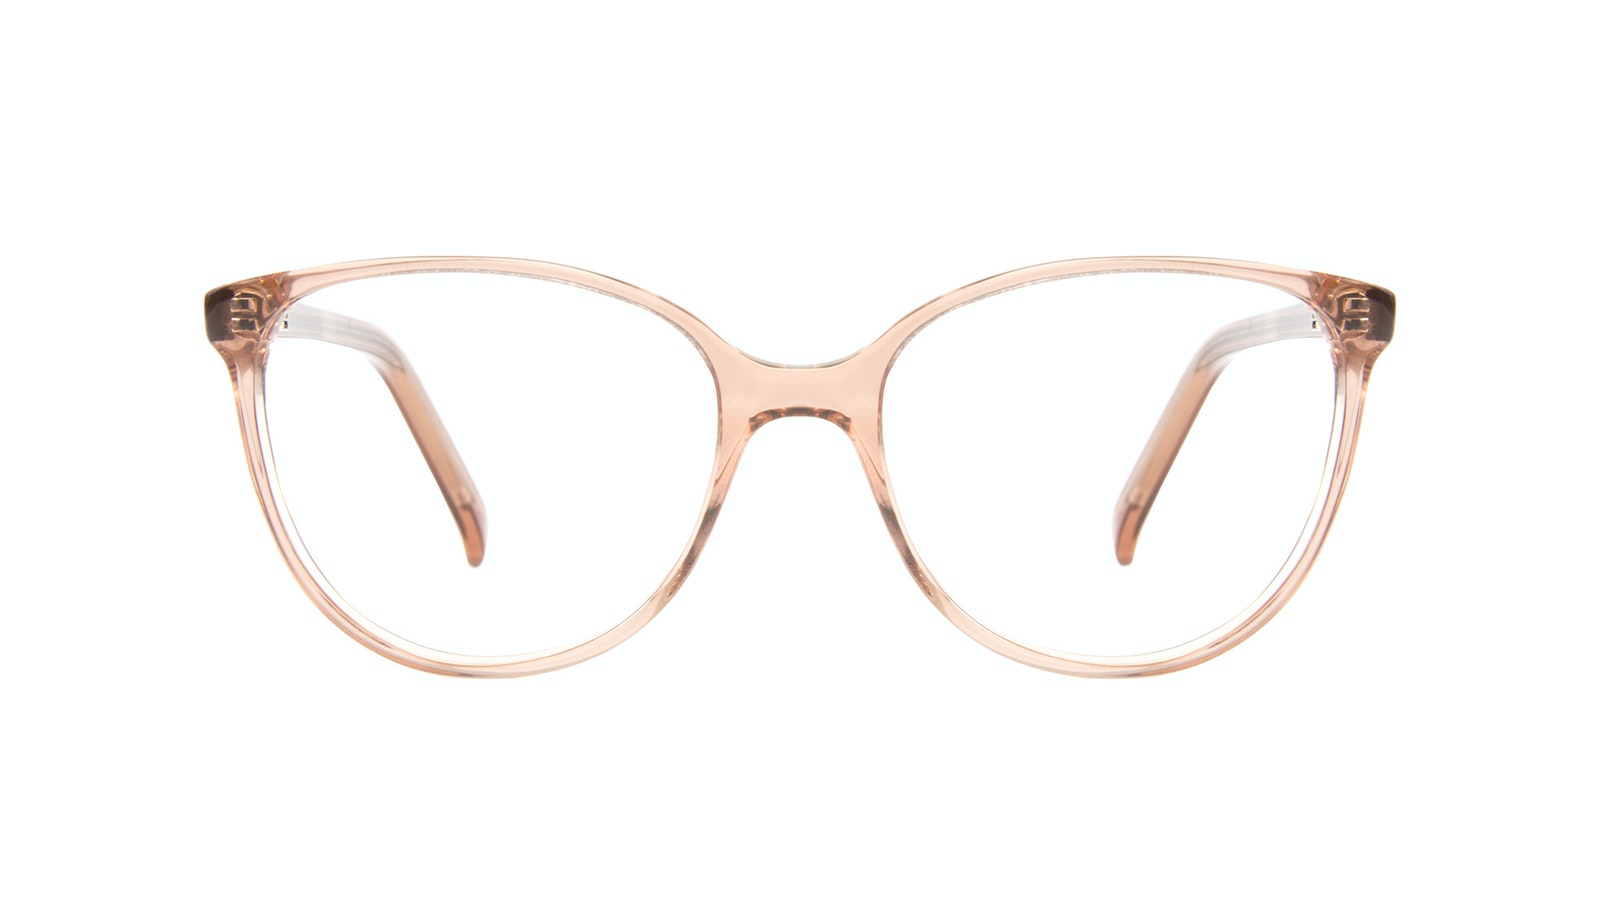 Affordable Fashion Glasses Round Eyeglasses Women Imagine Petite Rose